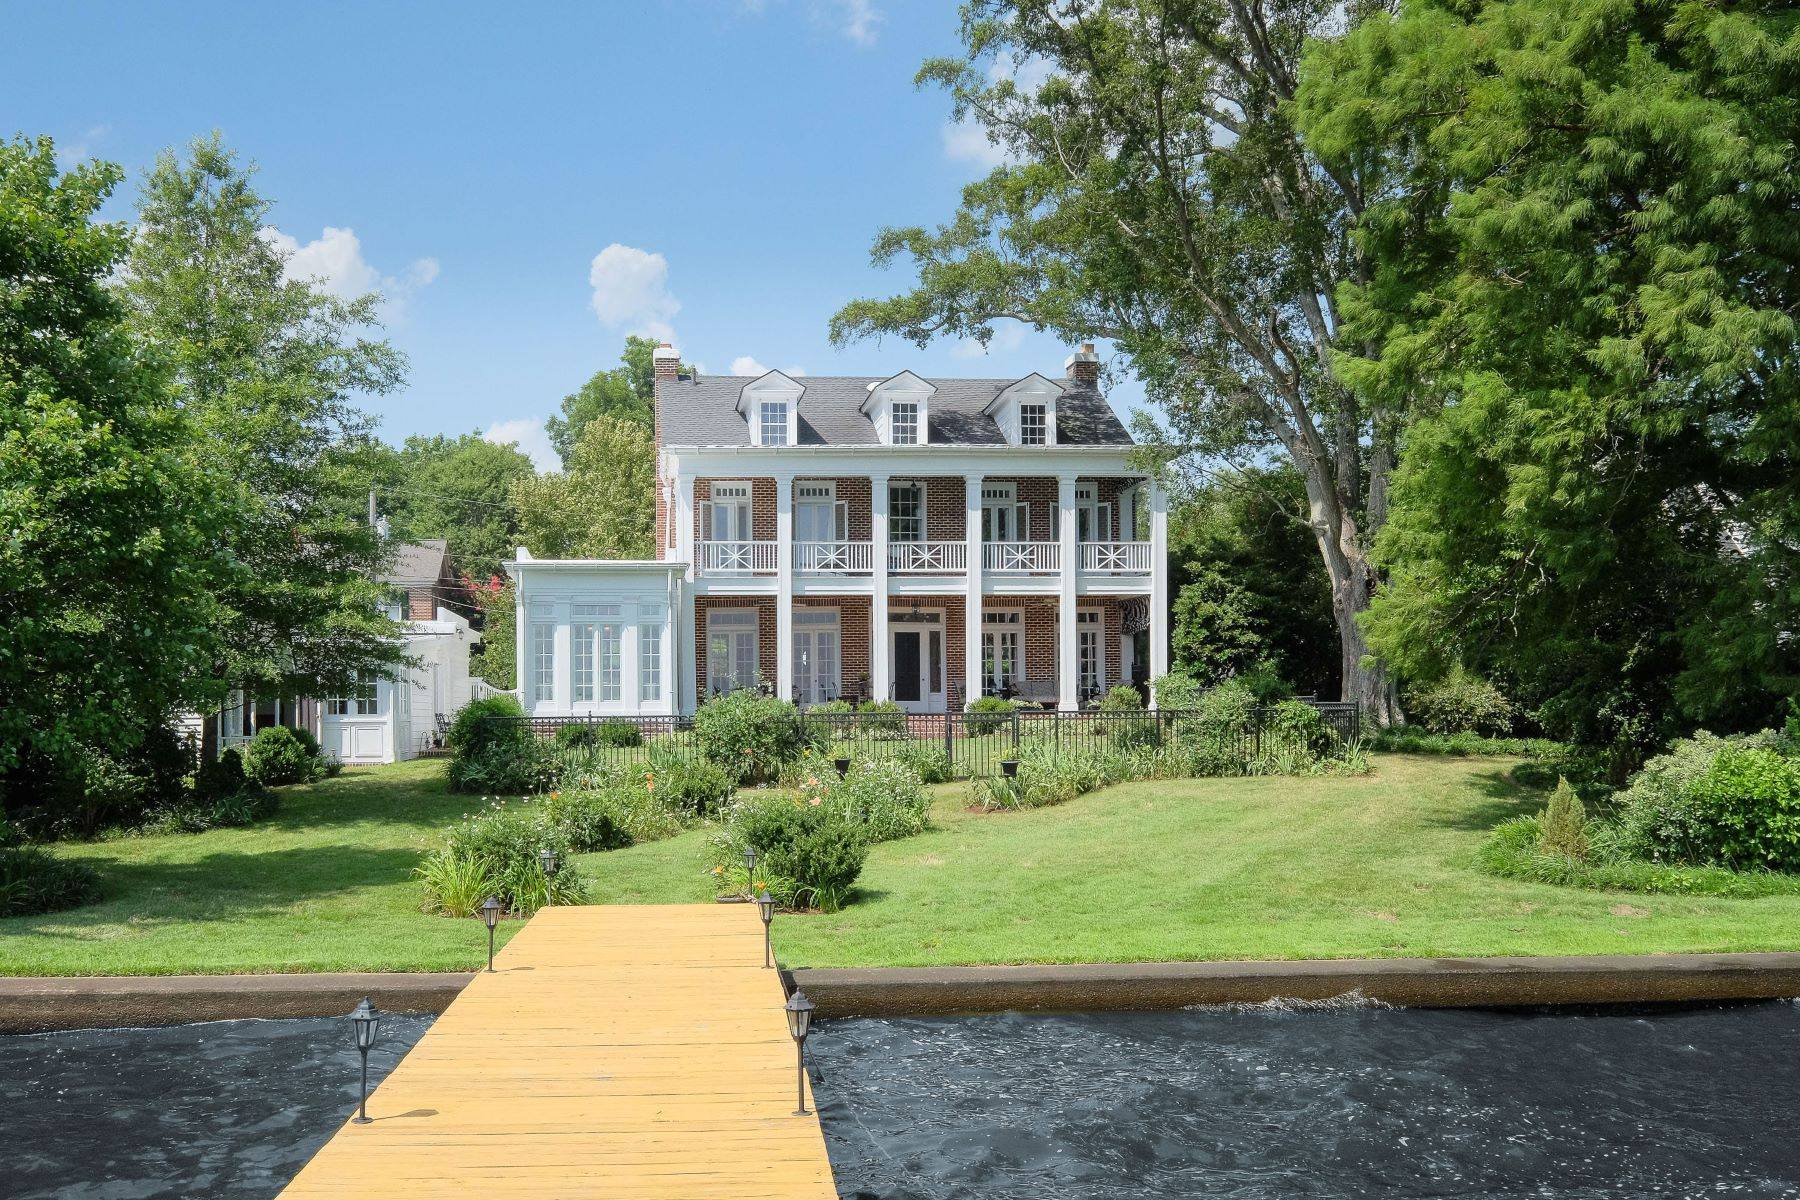 Maison unifamiliale pour l Vente à Historic District Waterfront 117 Blount St Edenton, Carolina Du Nord, 27932 États-Unis